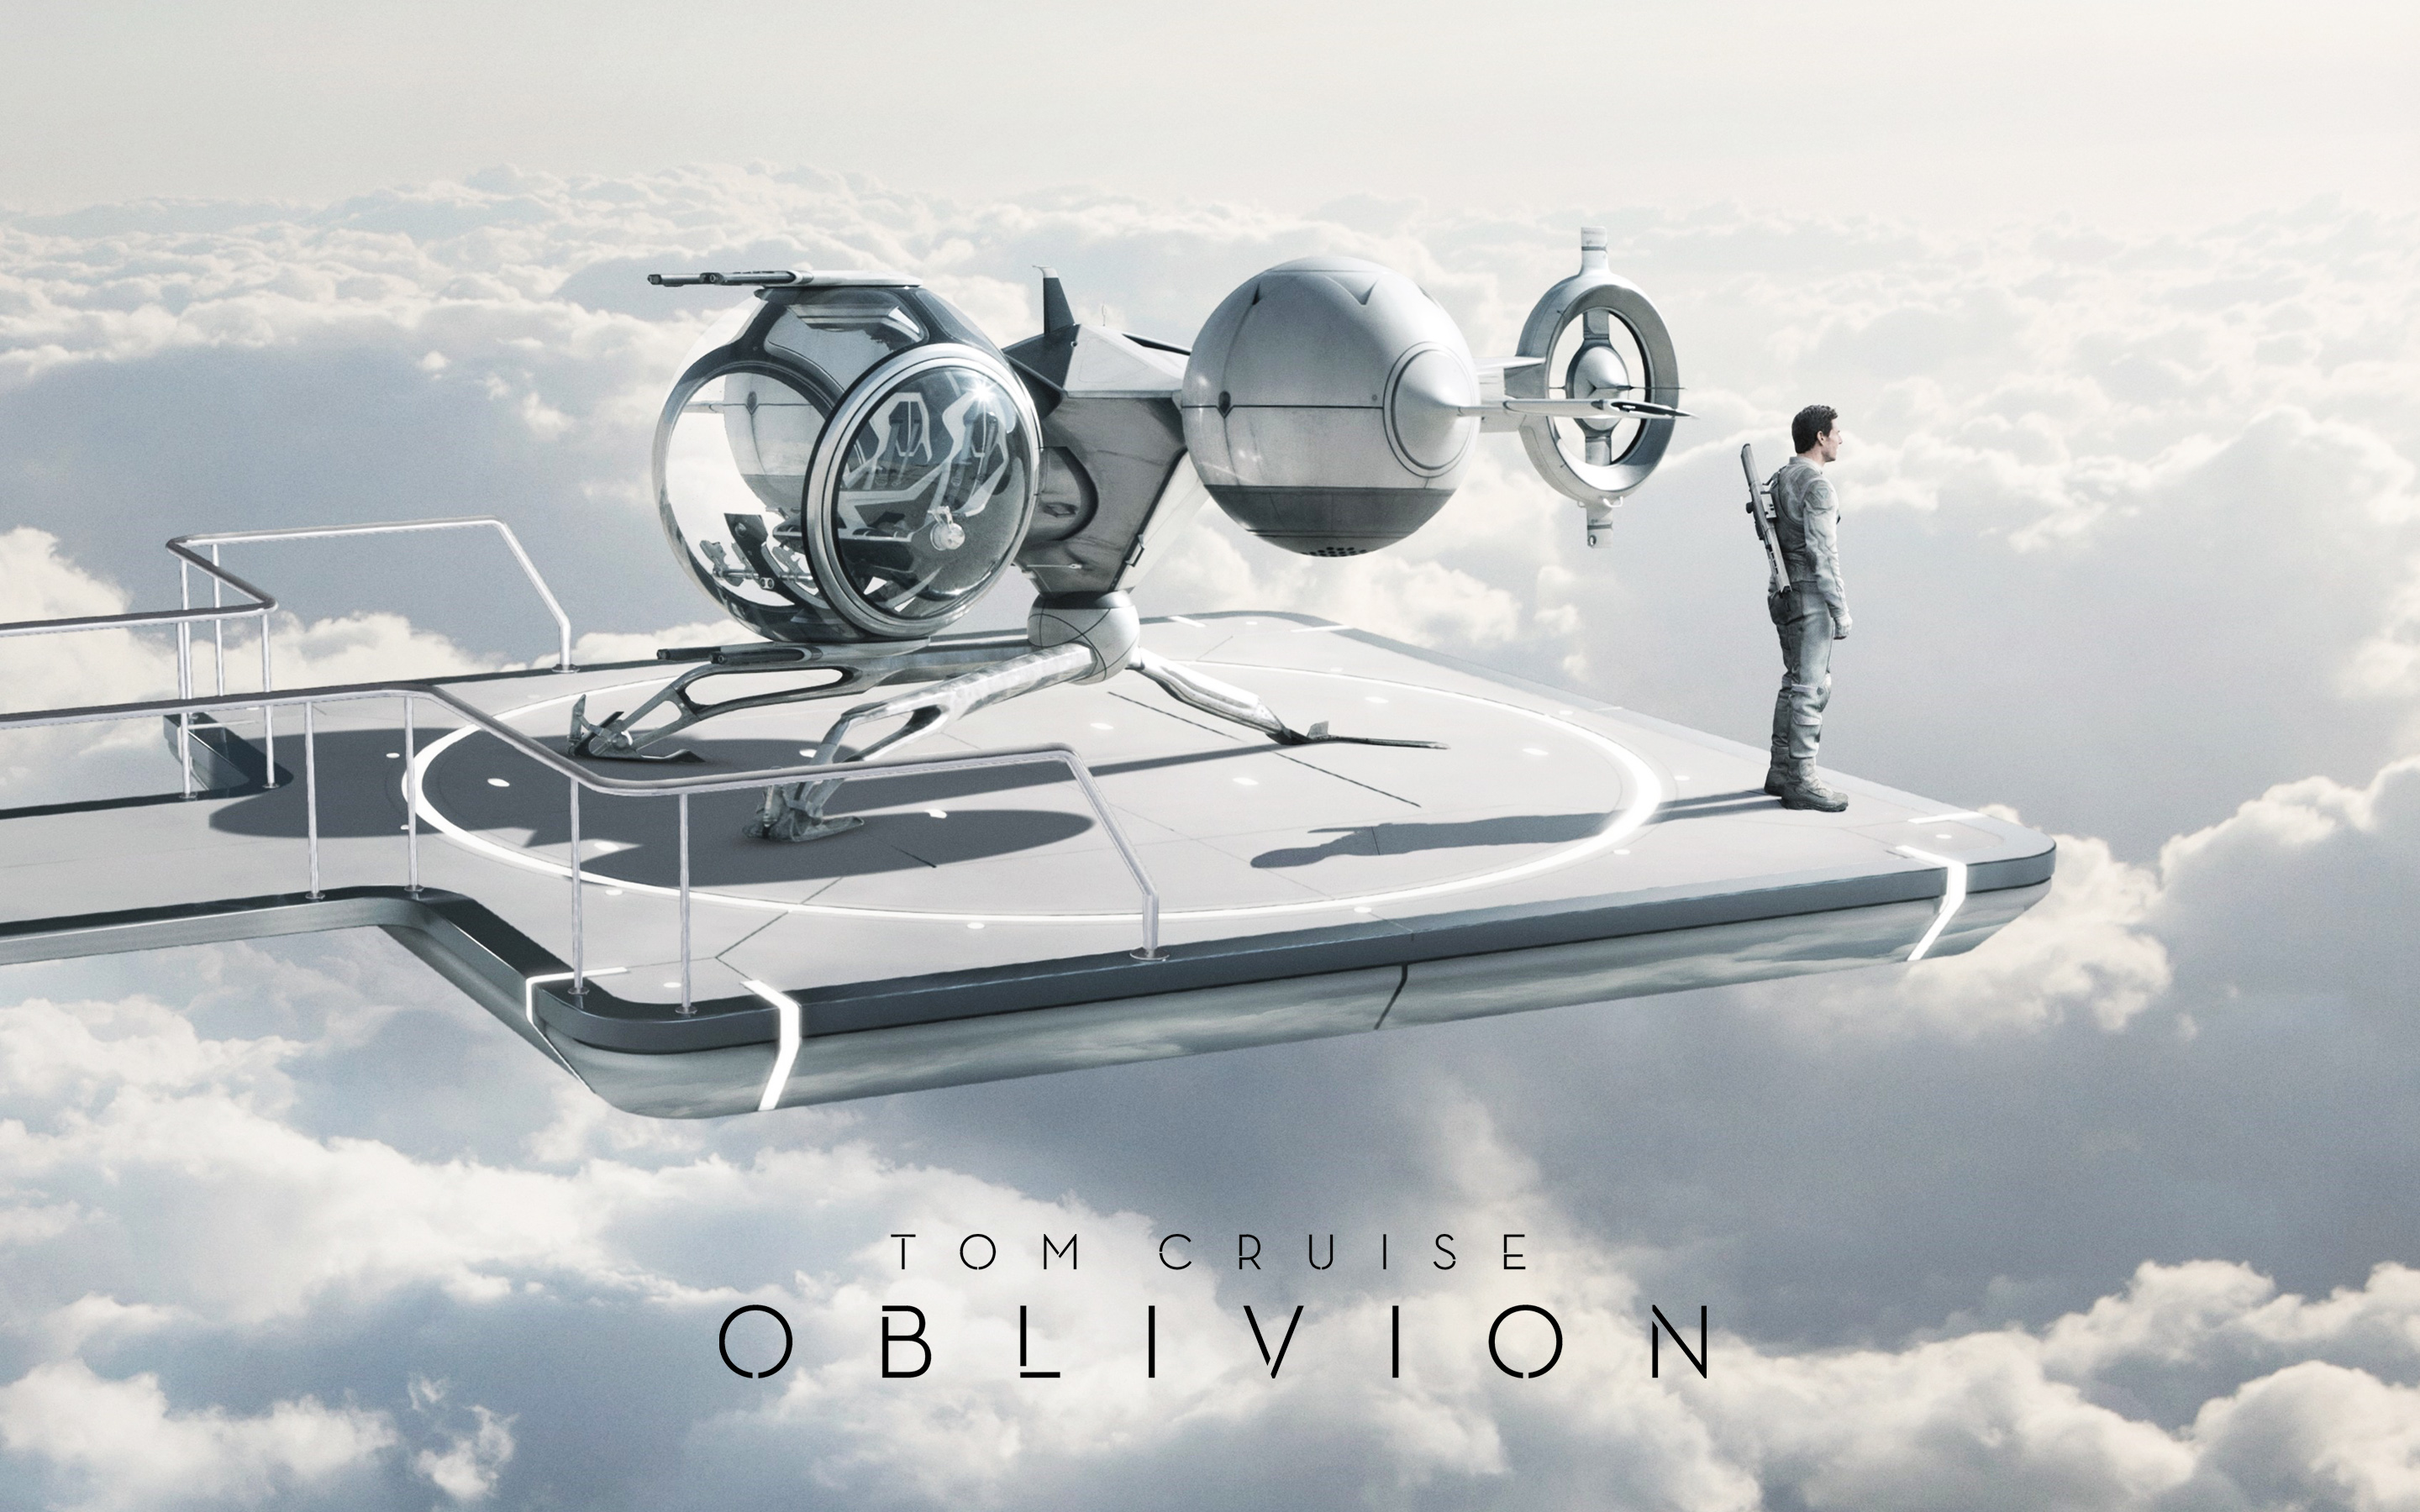 Tom Cruise Oblivion Movie Facebook Covers Wallpapers HD 2880x1800